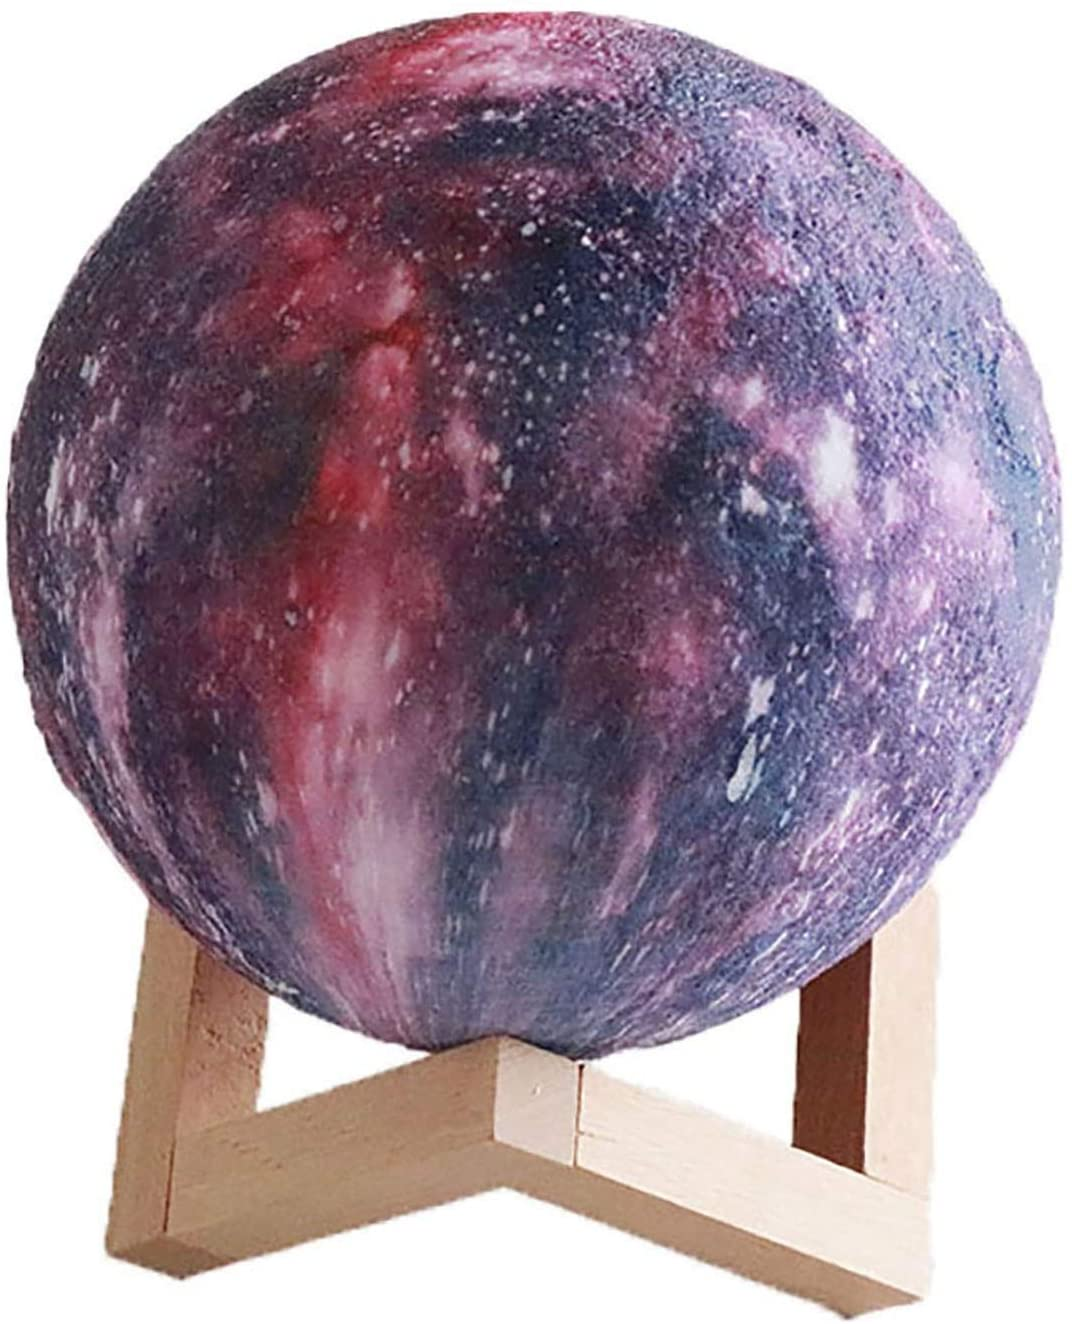 3D Moon Lamp,3 Colors Change Touch Control Wood Holder LED Night Light Rechargeable Home Decor Creative Gift (Size : 8cm/3.15